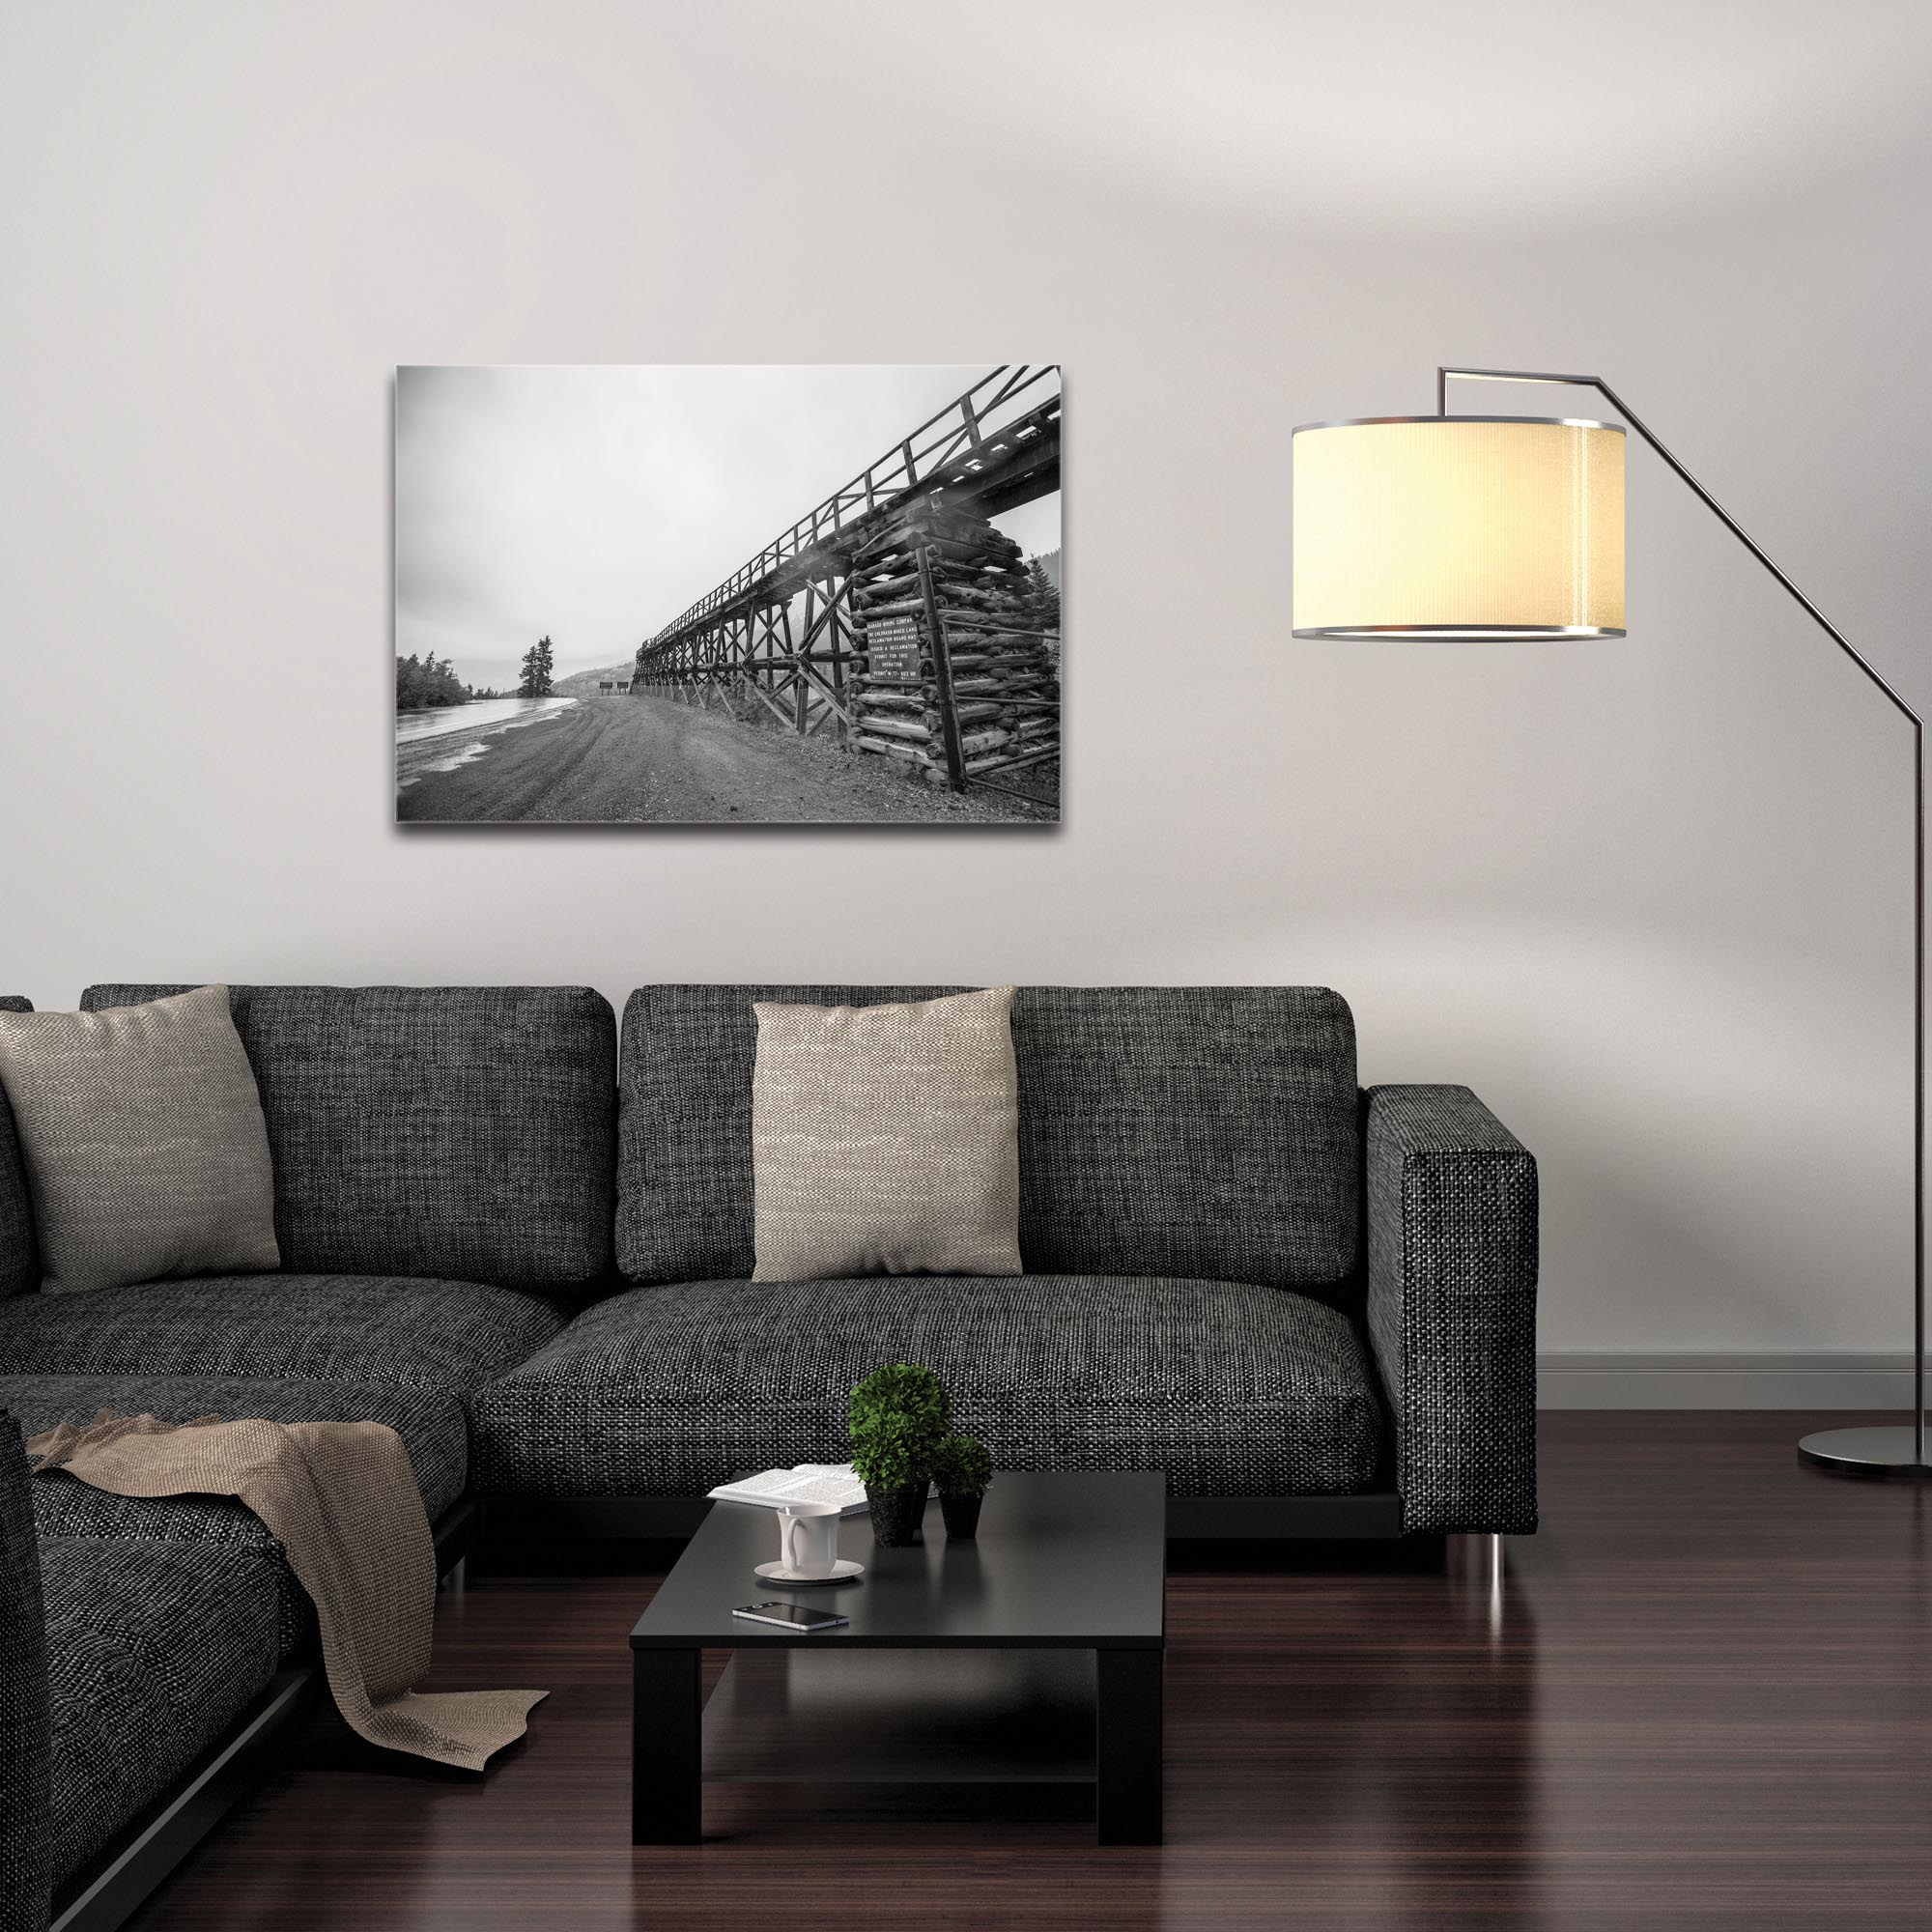 Western Wall Art 'Old Railroad Bridge' - Bridges Decor on Metal or Plexiglass - Image 3